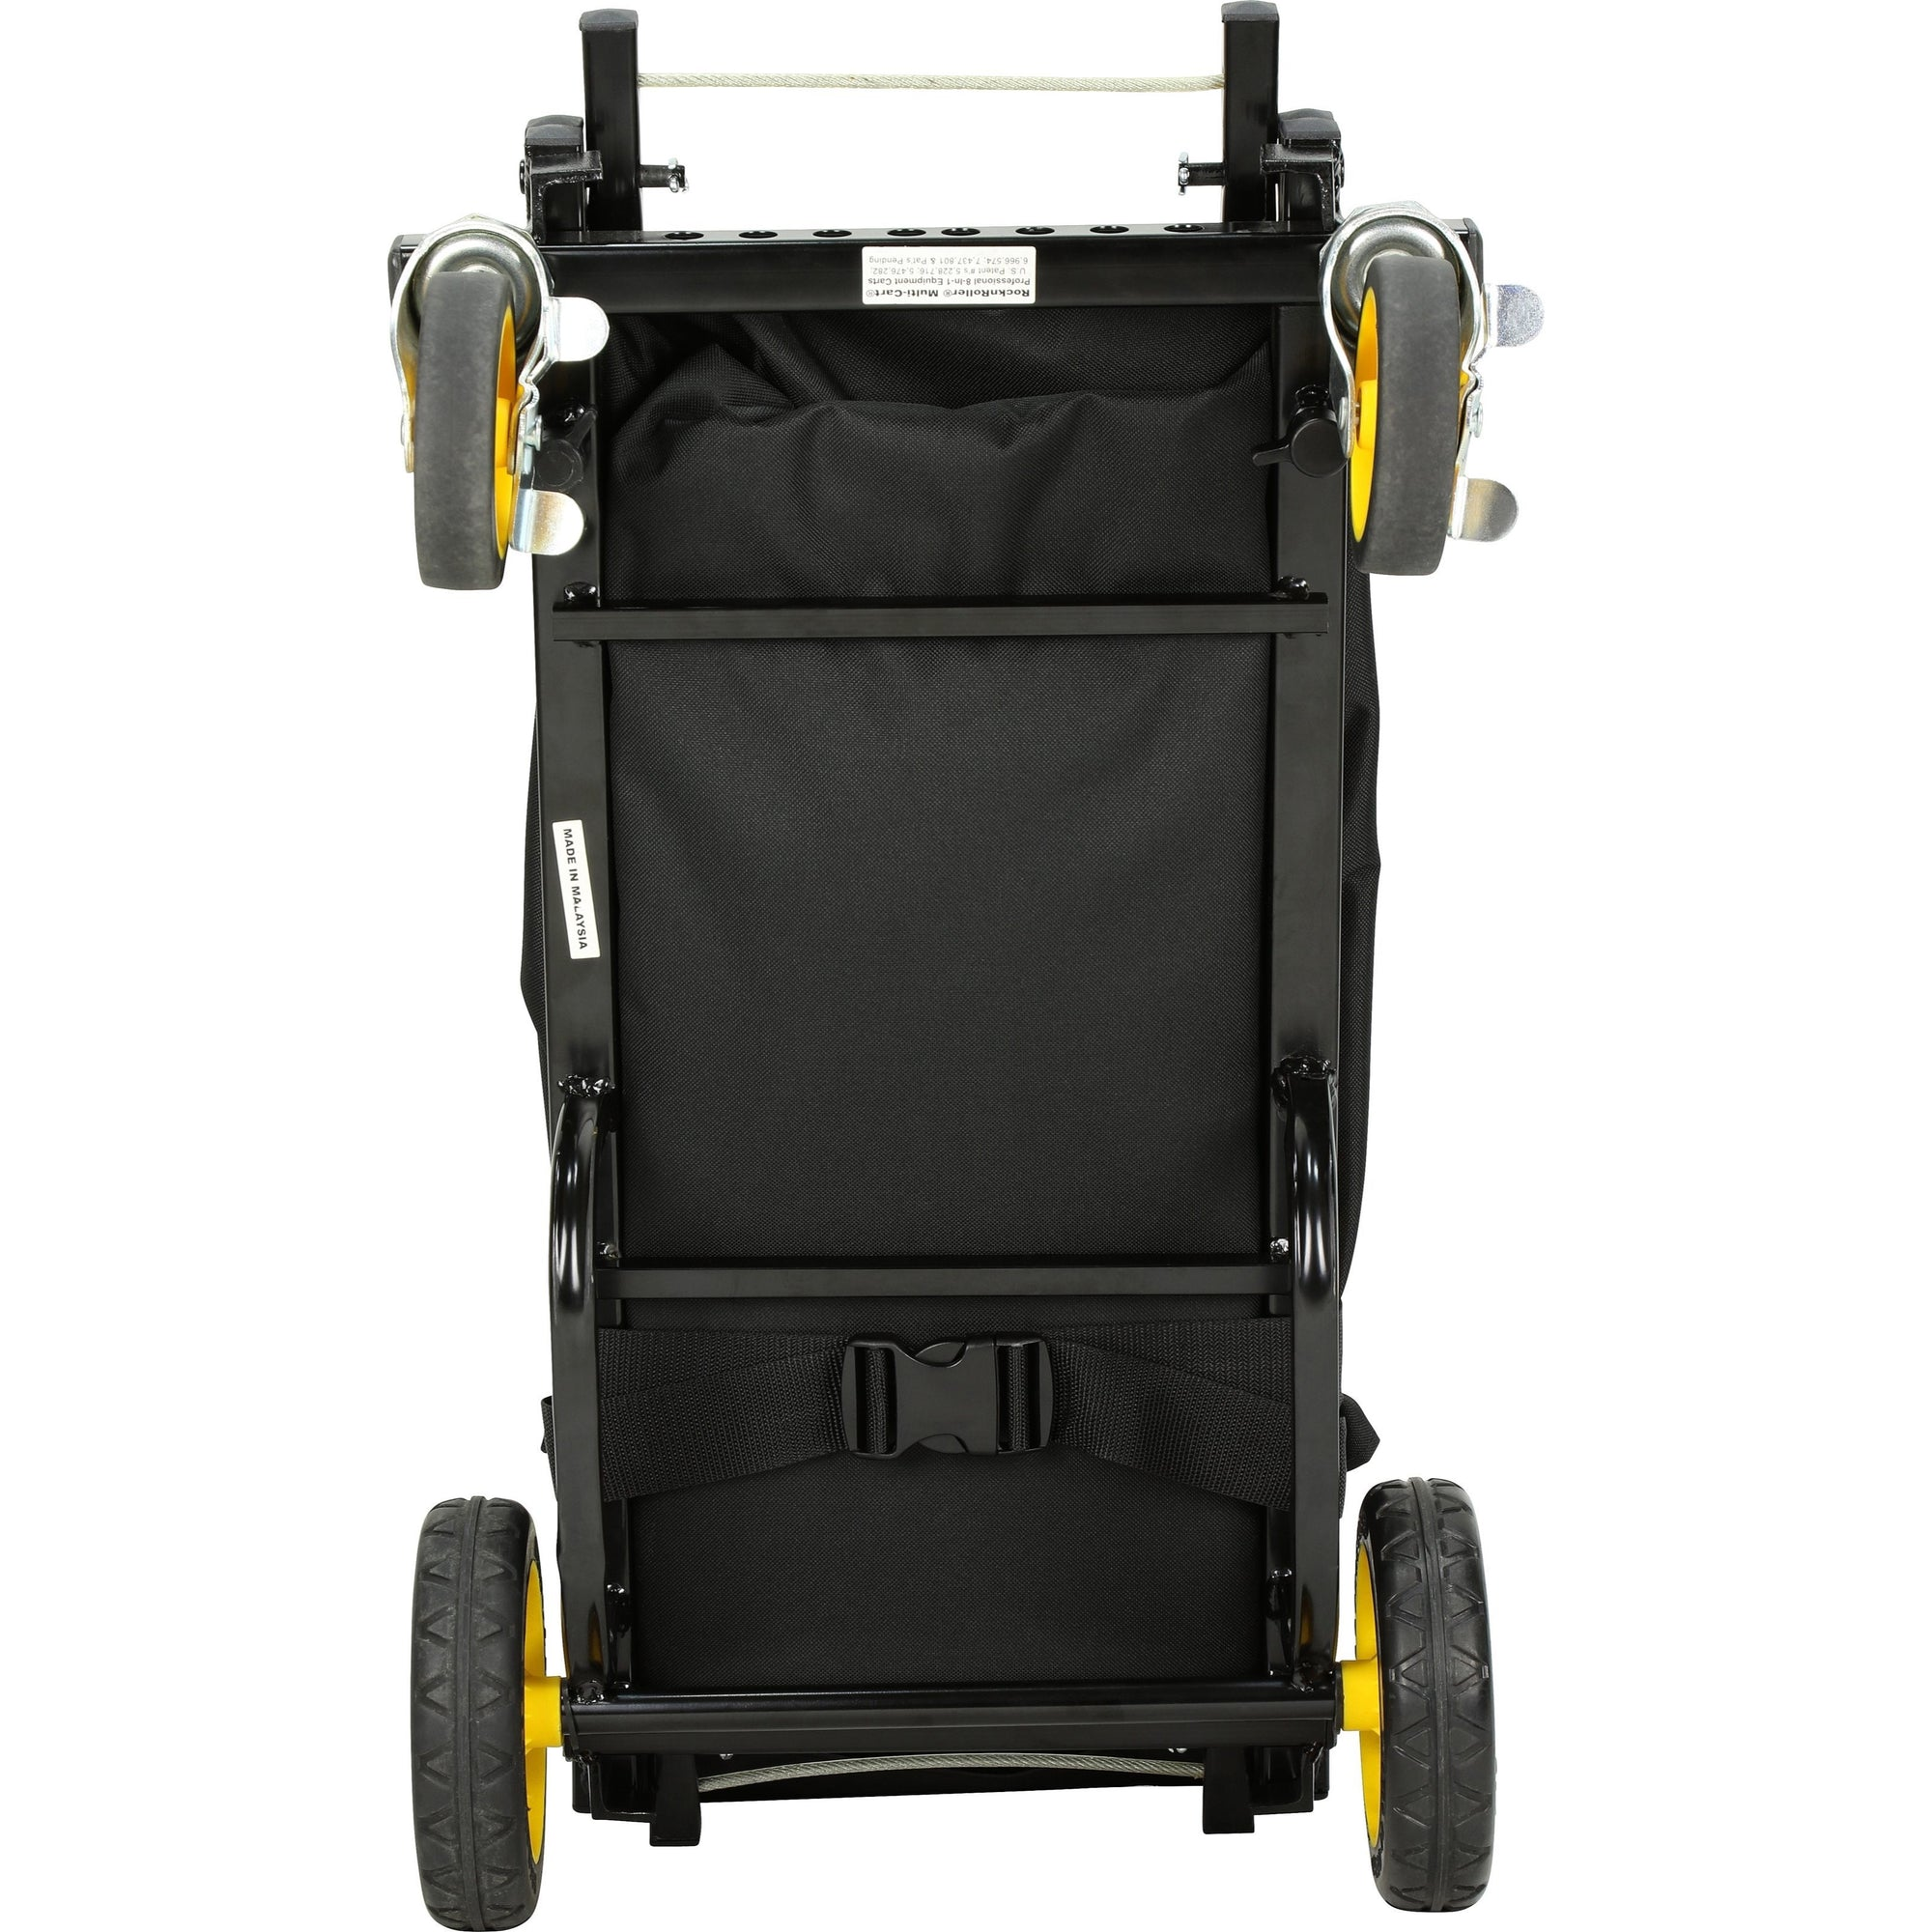 RocknRoller RSA-WAG2 Wagon Bag for R2 Carts